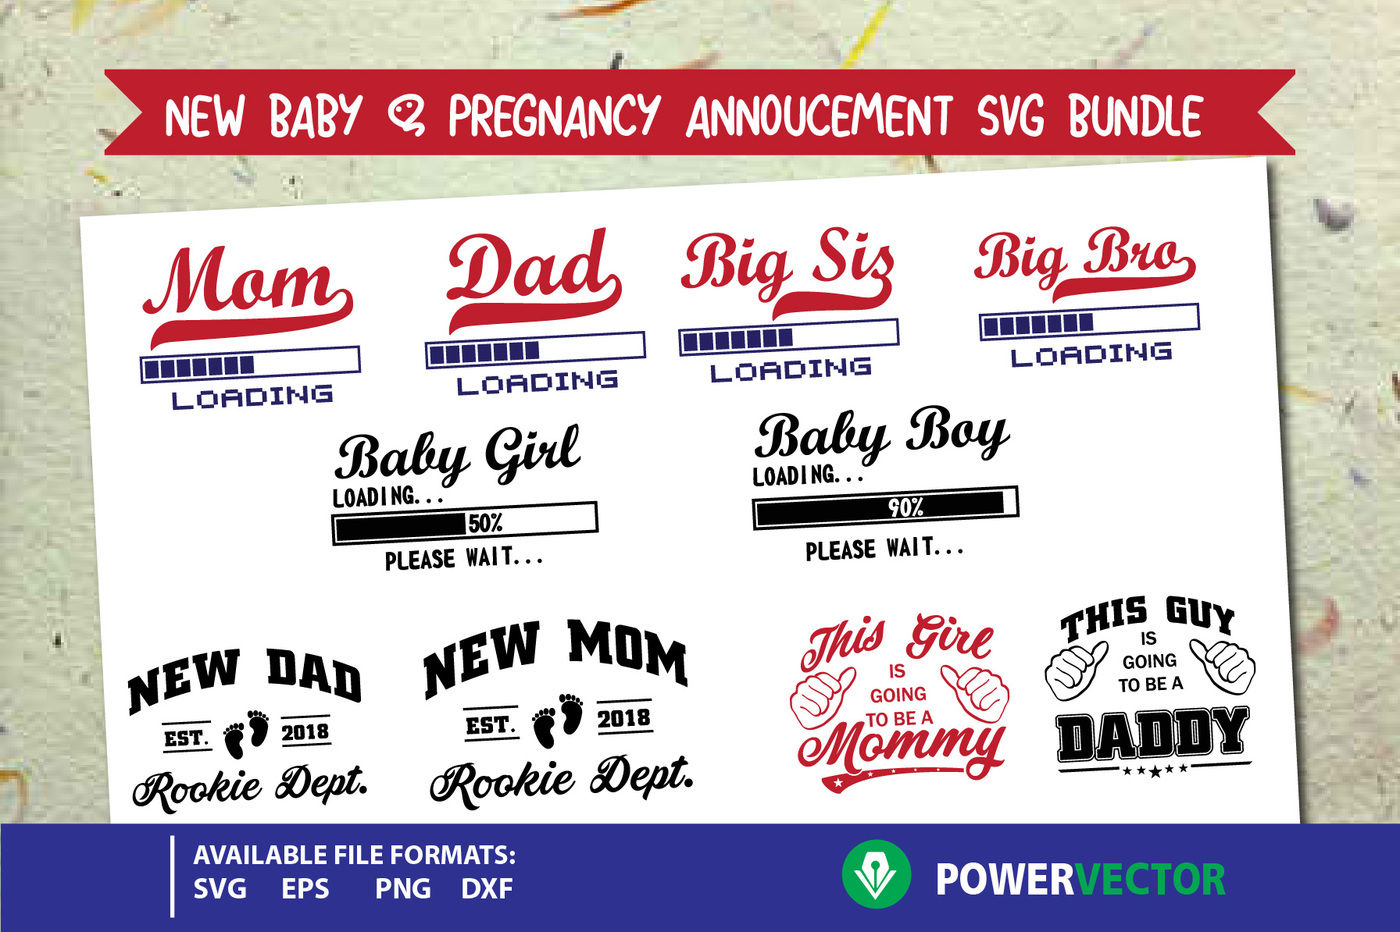 New Baby Pregnancy Announcement Svg Dxf Eps Png Bundle By